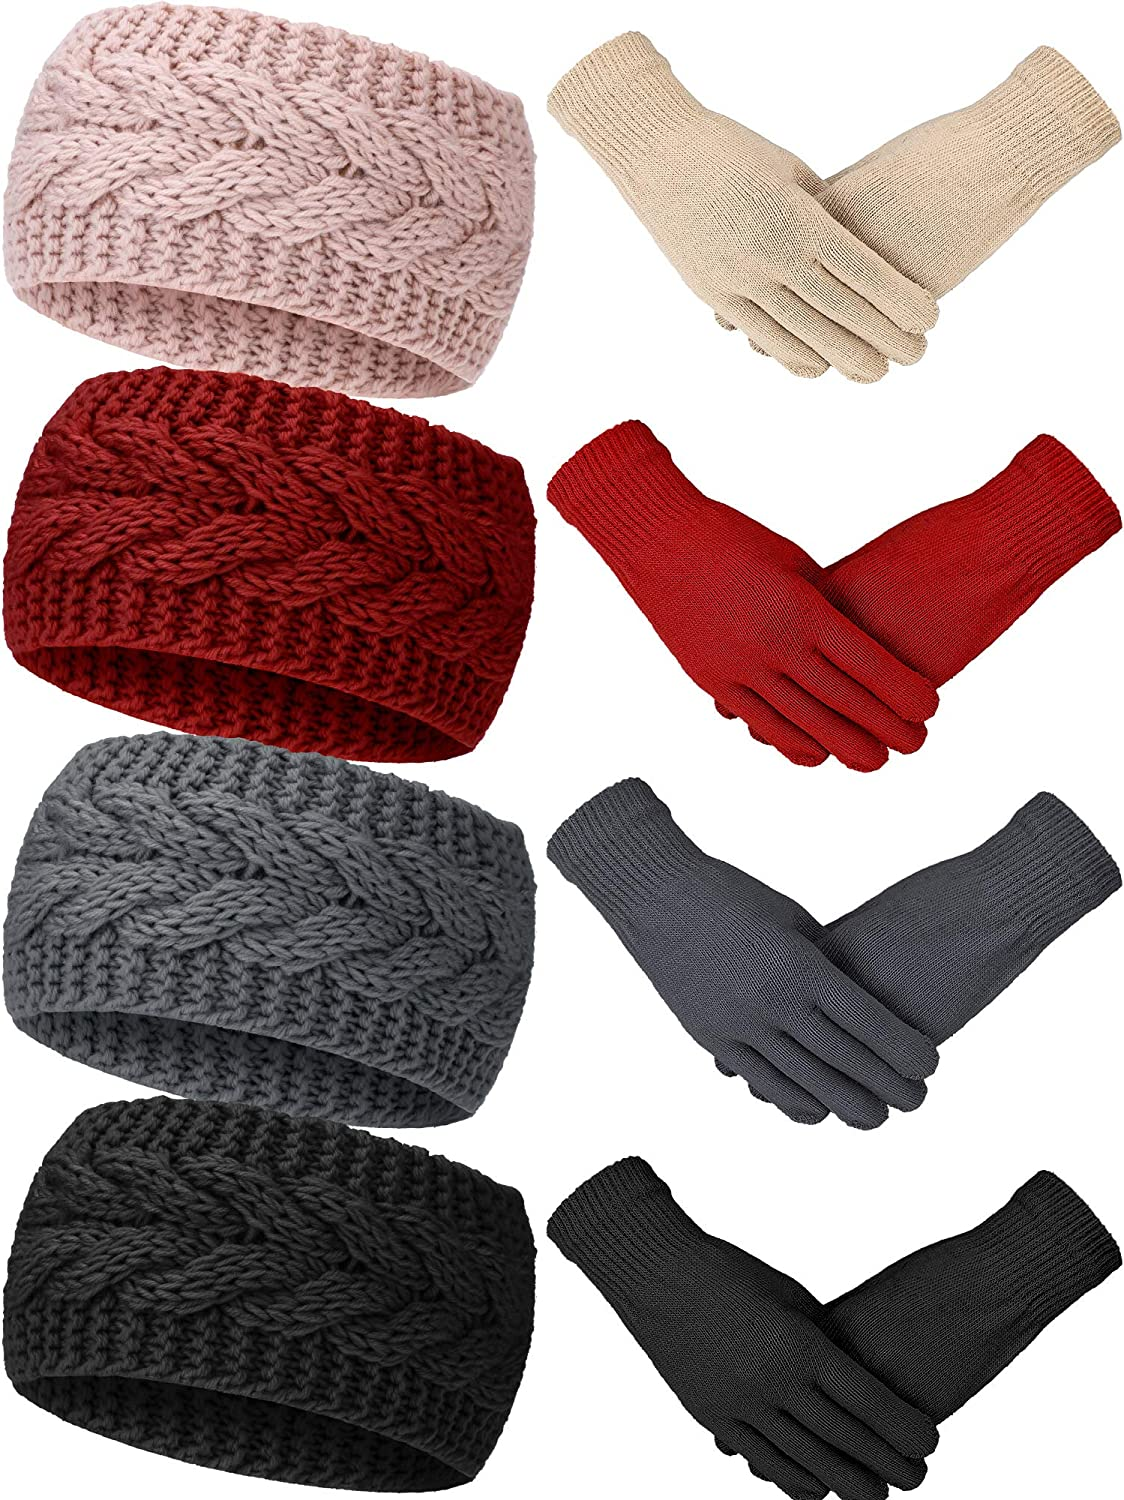 8 Pieces Manufacturer regenerated product Cable Knit Headbands Head Wraps Complete Free Shipping Crochet Gloves and